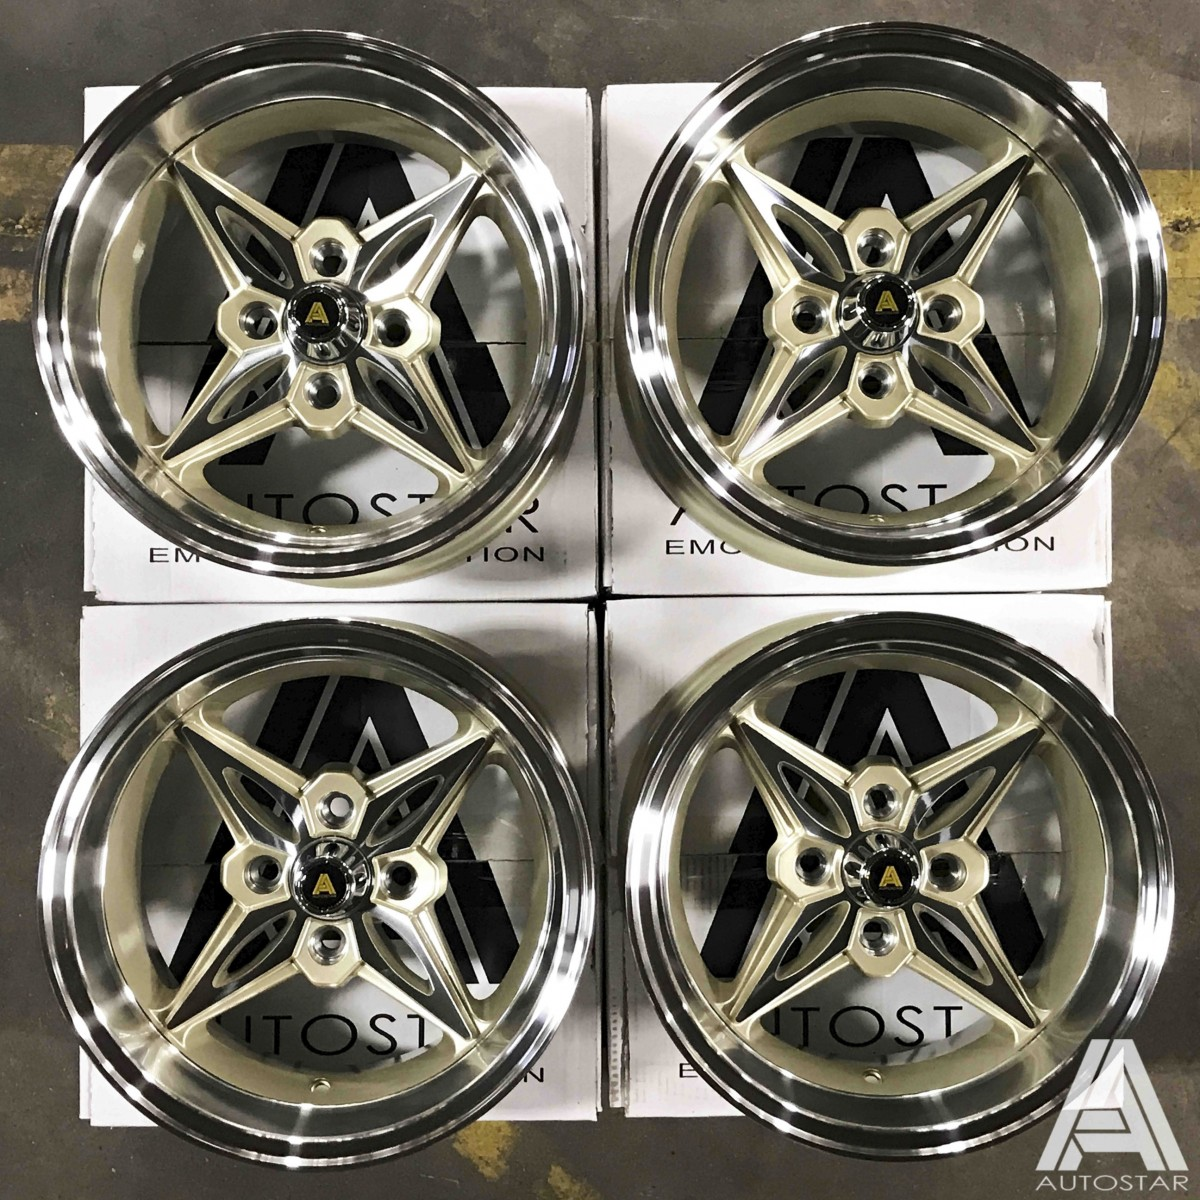 AutoStar Kanji 14x8.0 ET-5 & 14x9.0 ET-13 4x114 Polished Lip with Champagne Gold Centre - Staggered Set of 4